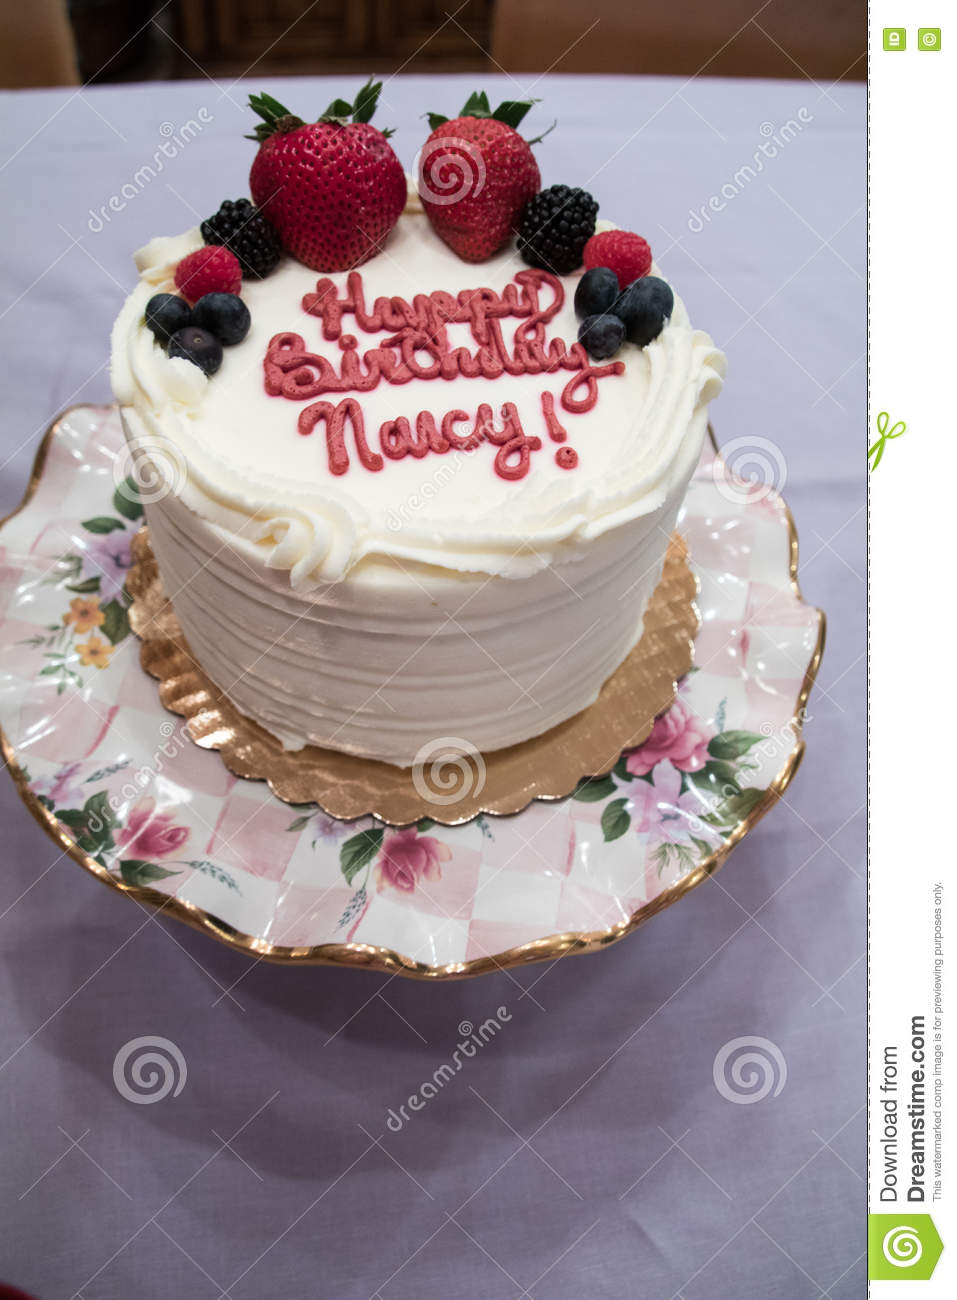 White Birthday Cake Made With White Frosting And Strawberries And